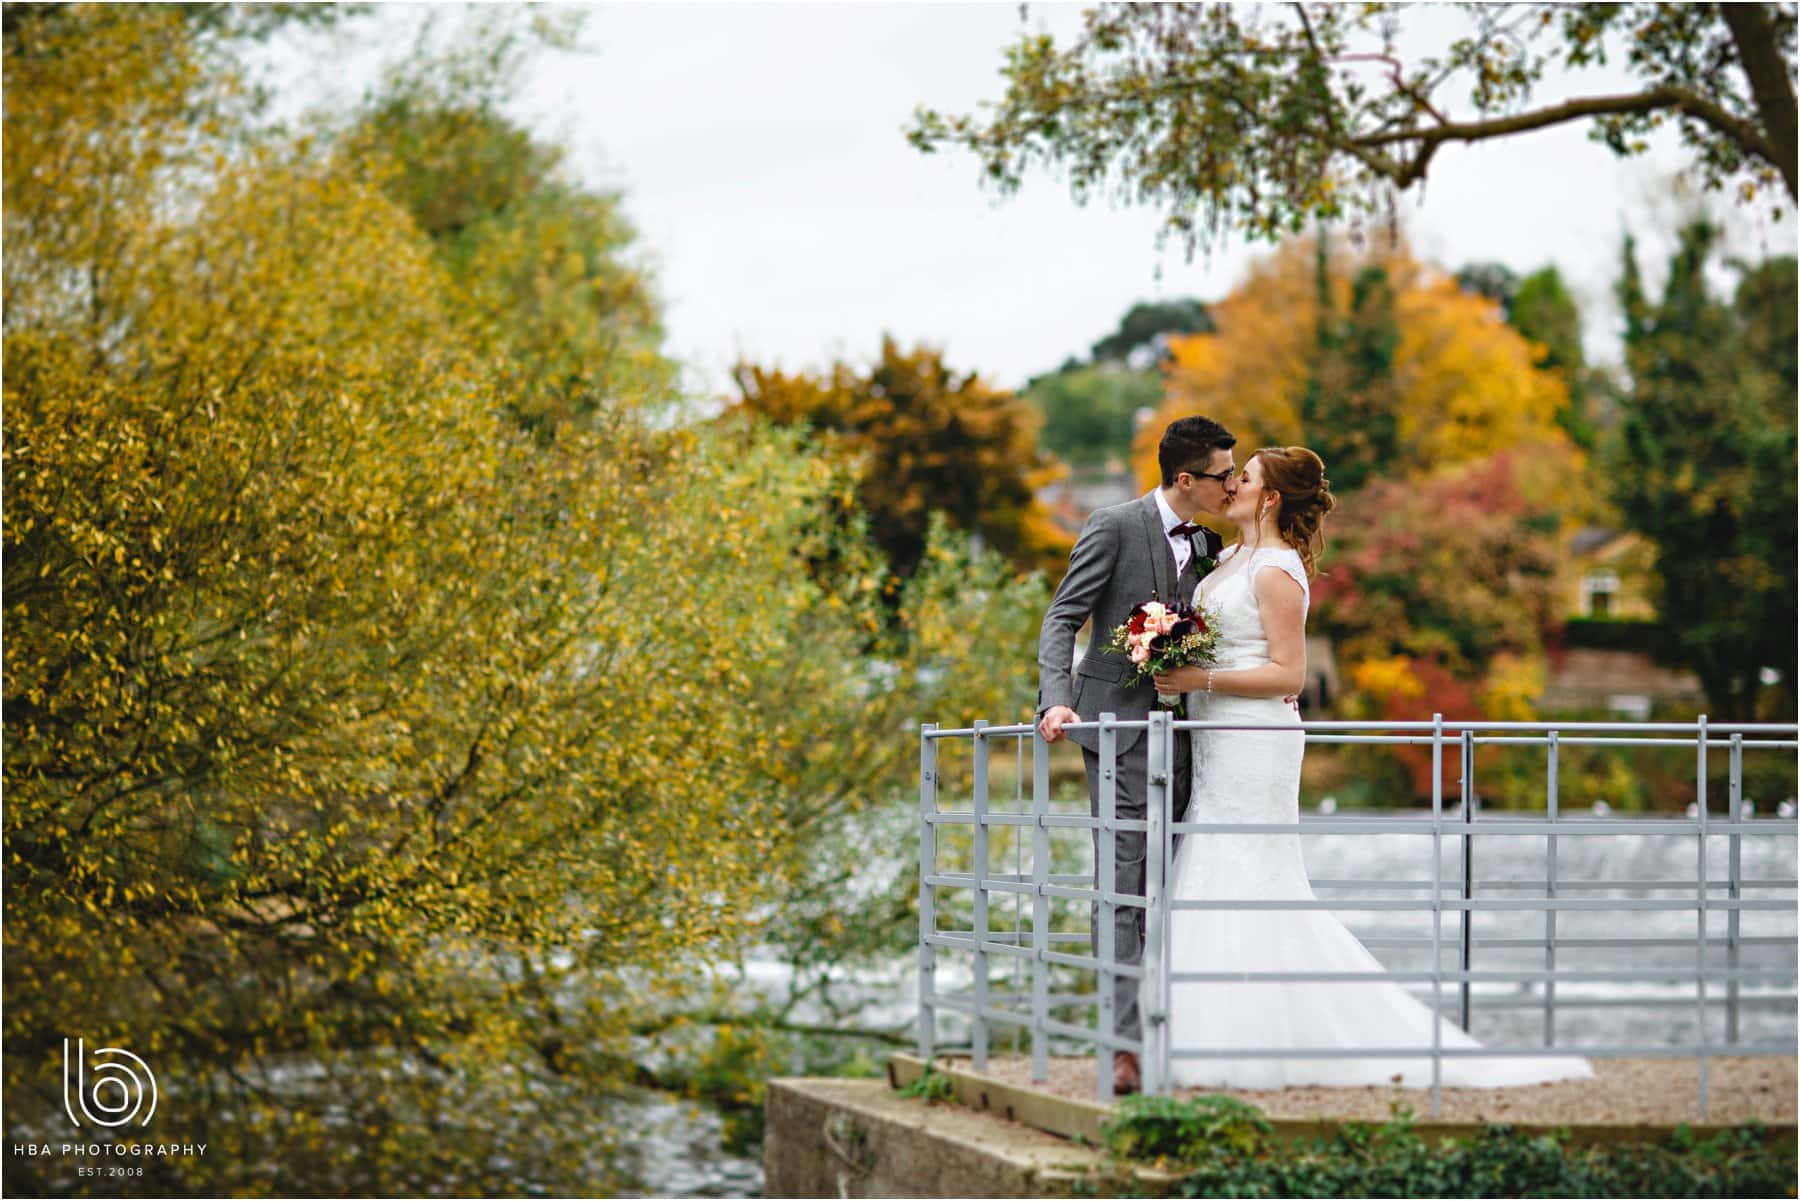 the bride and groom in the autumn colours